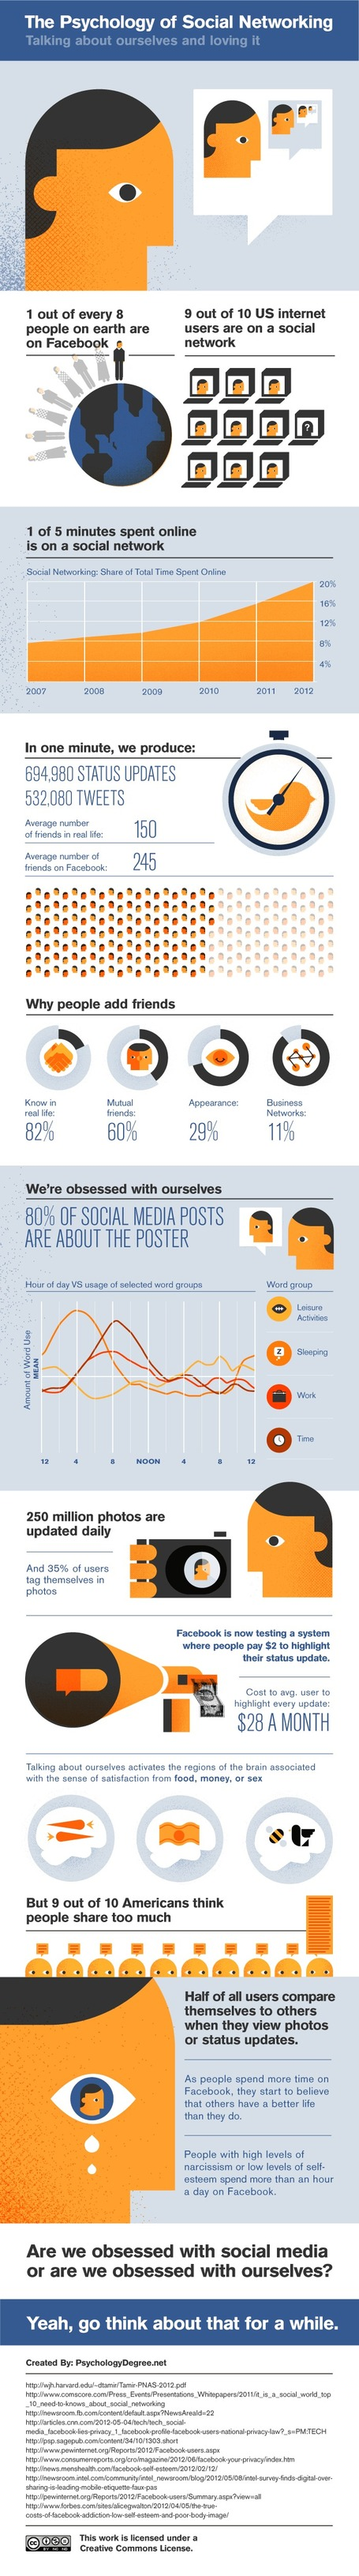 The Psychology Of Social Networking [INFOGRAPHIC] | digitalassetman | Scoop.it